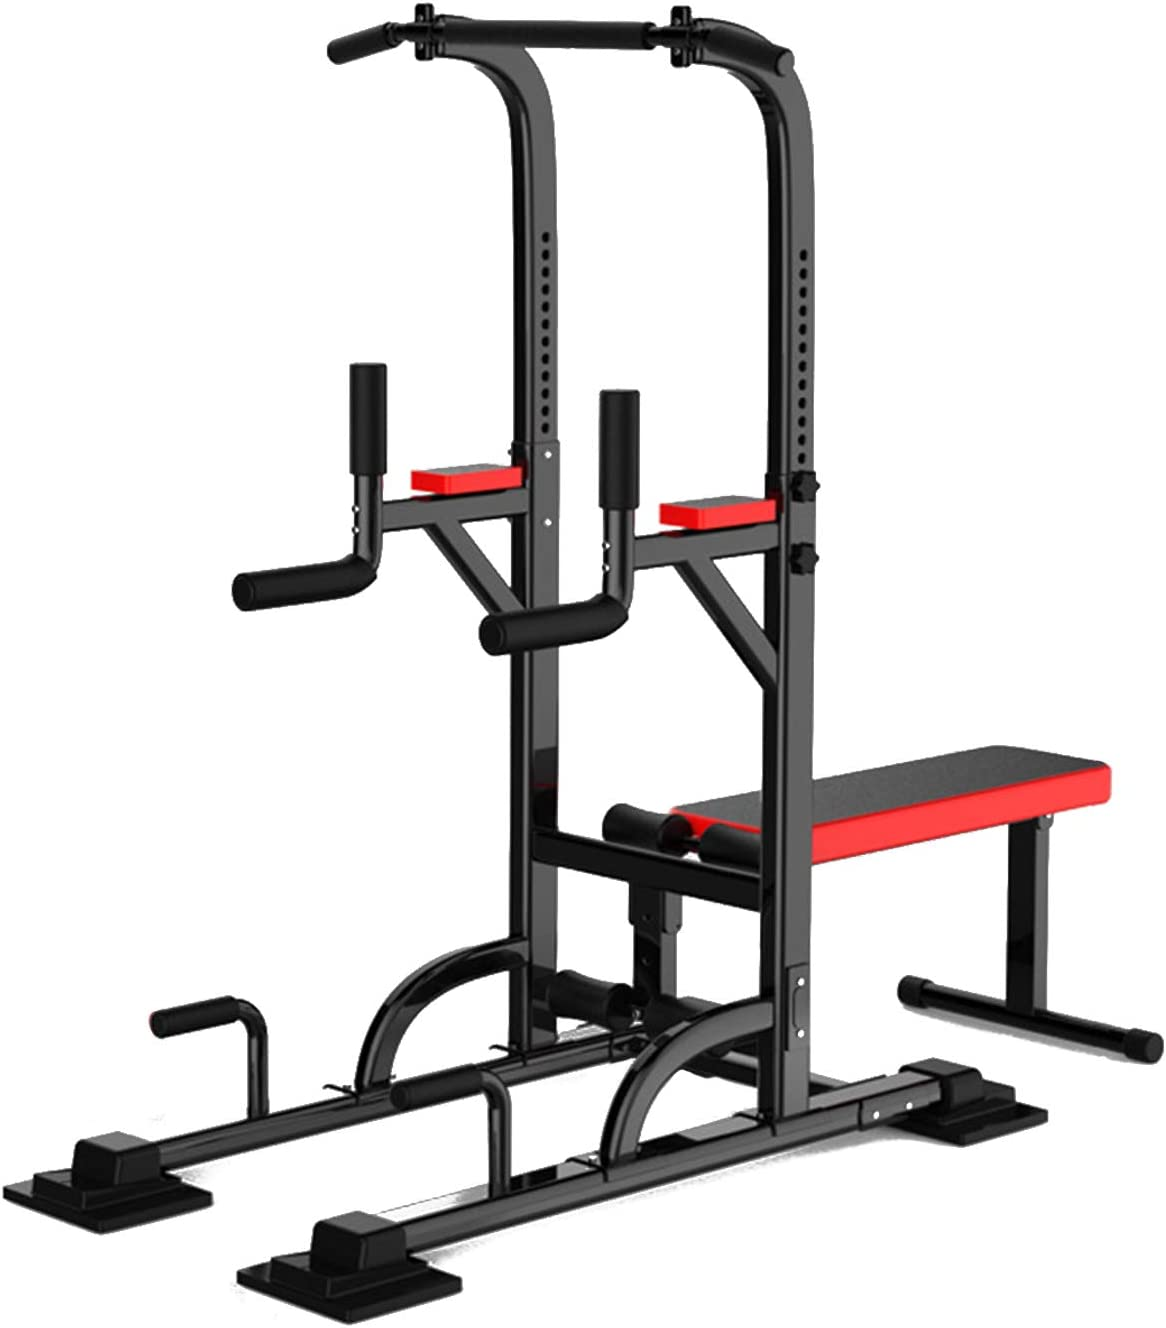 aiyu Multifunction Power Tower Pull Up Dip Station with Bench Home Gym Exercise Equipment, Adjustable Height Strength Training Heavy Duty Fitness Machines, Dip Stands, Pull Up Bars, Push Up Bars